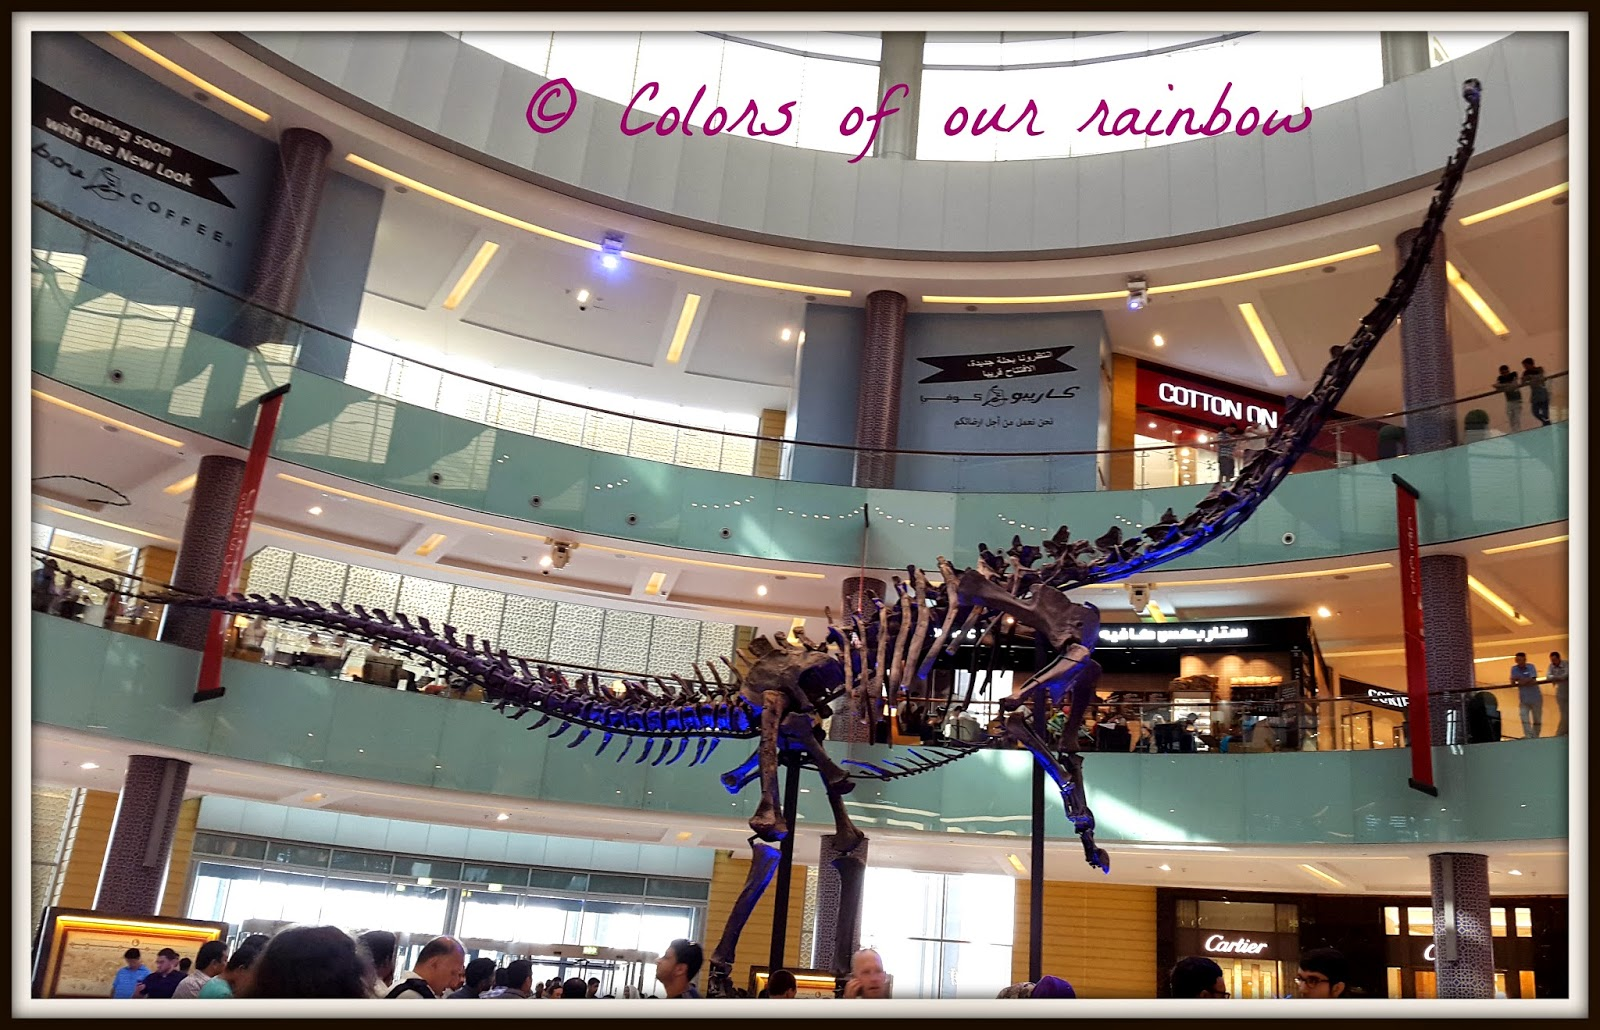 Dinosaur remains at Dubai Mall